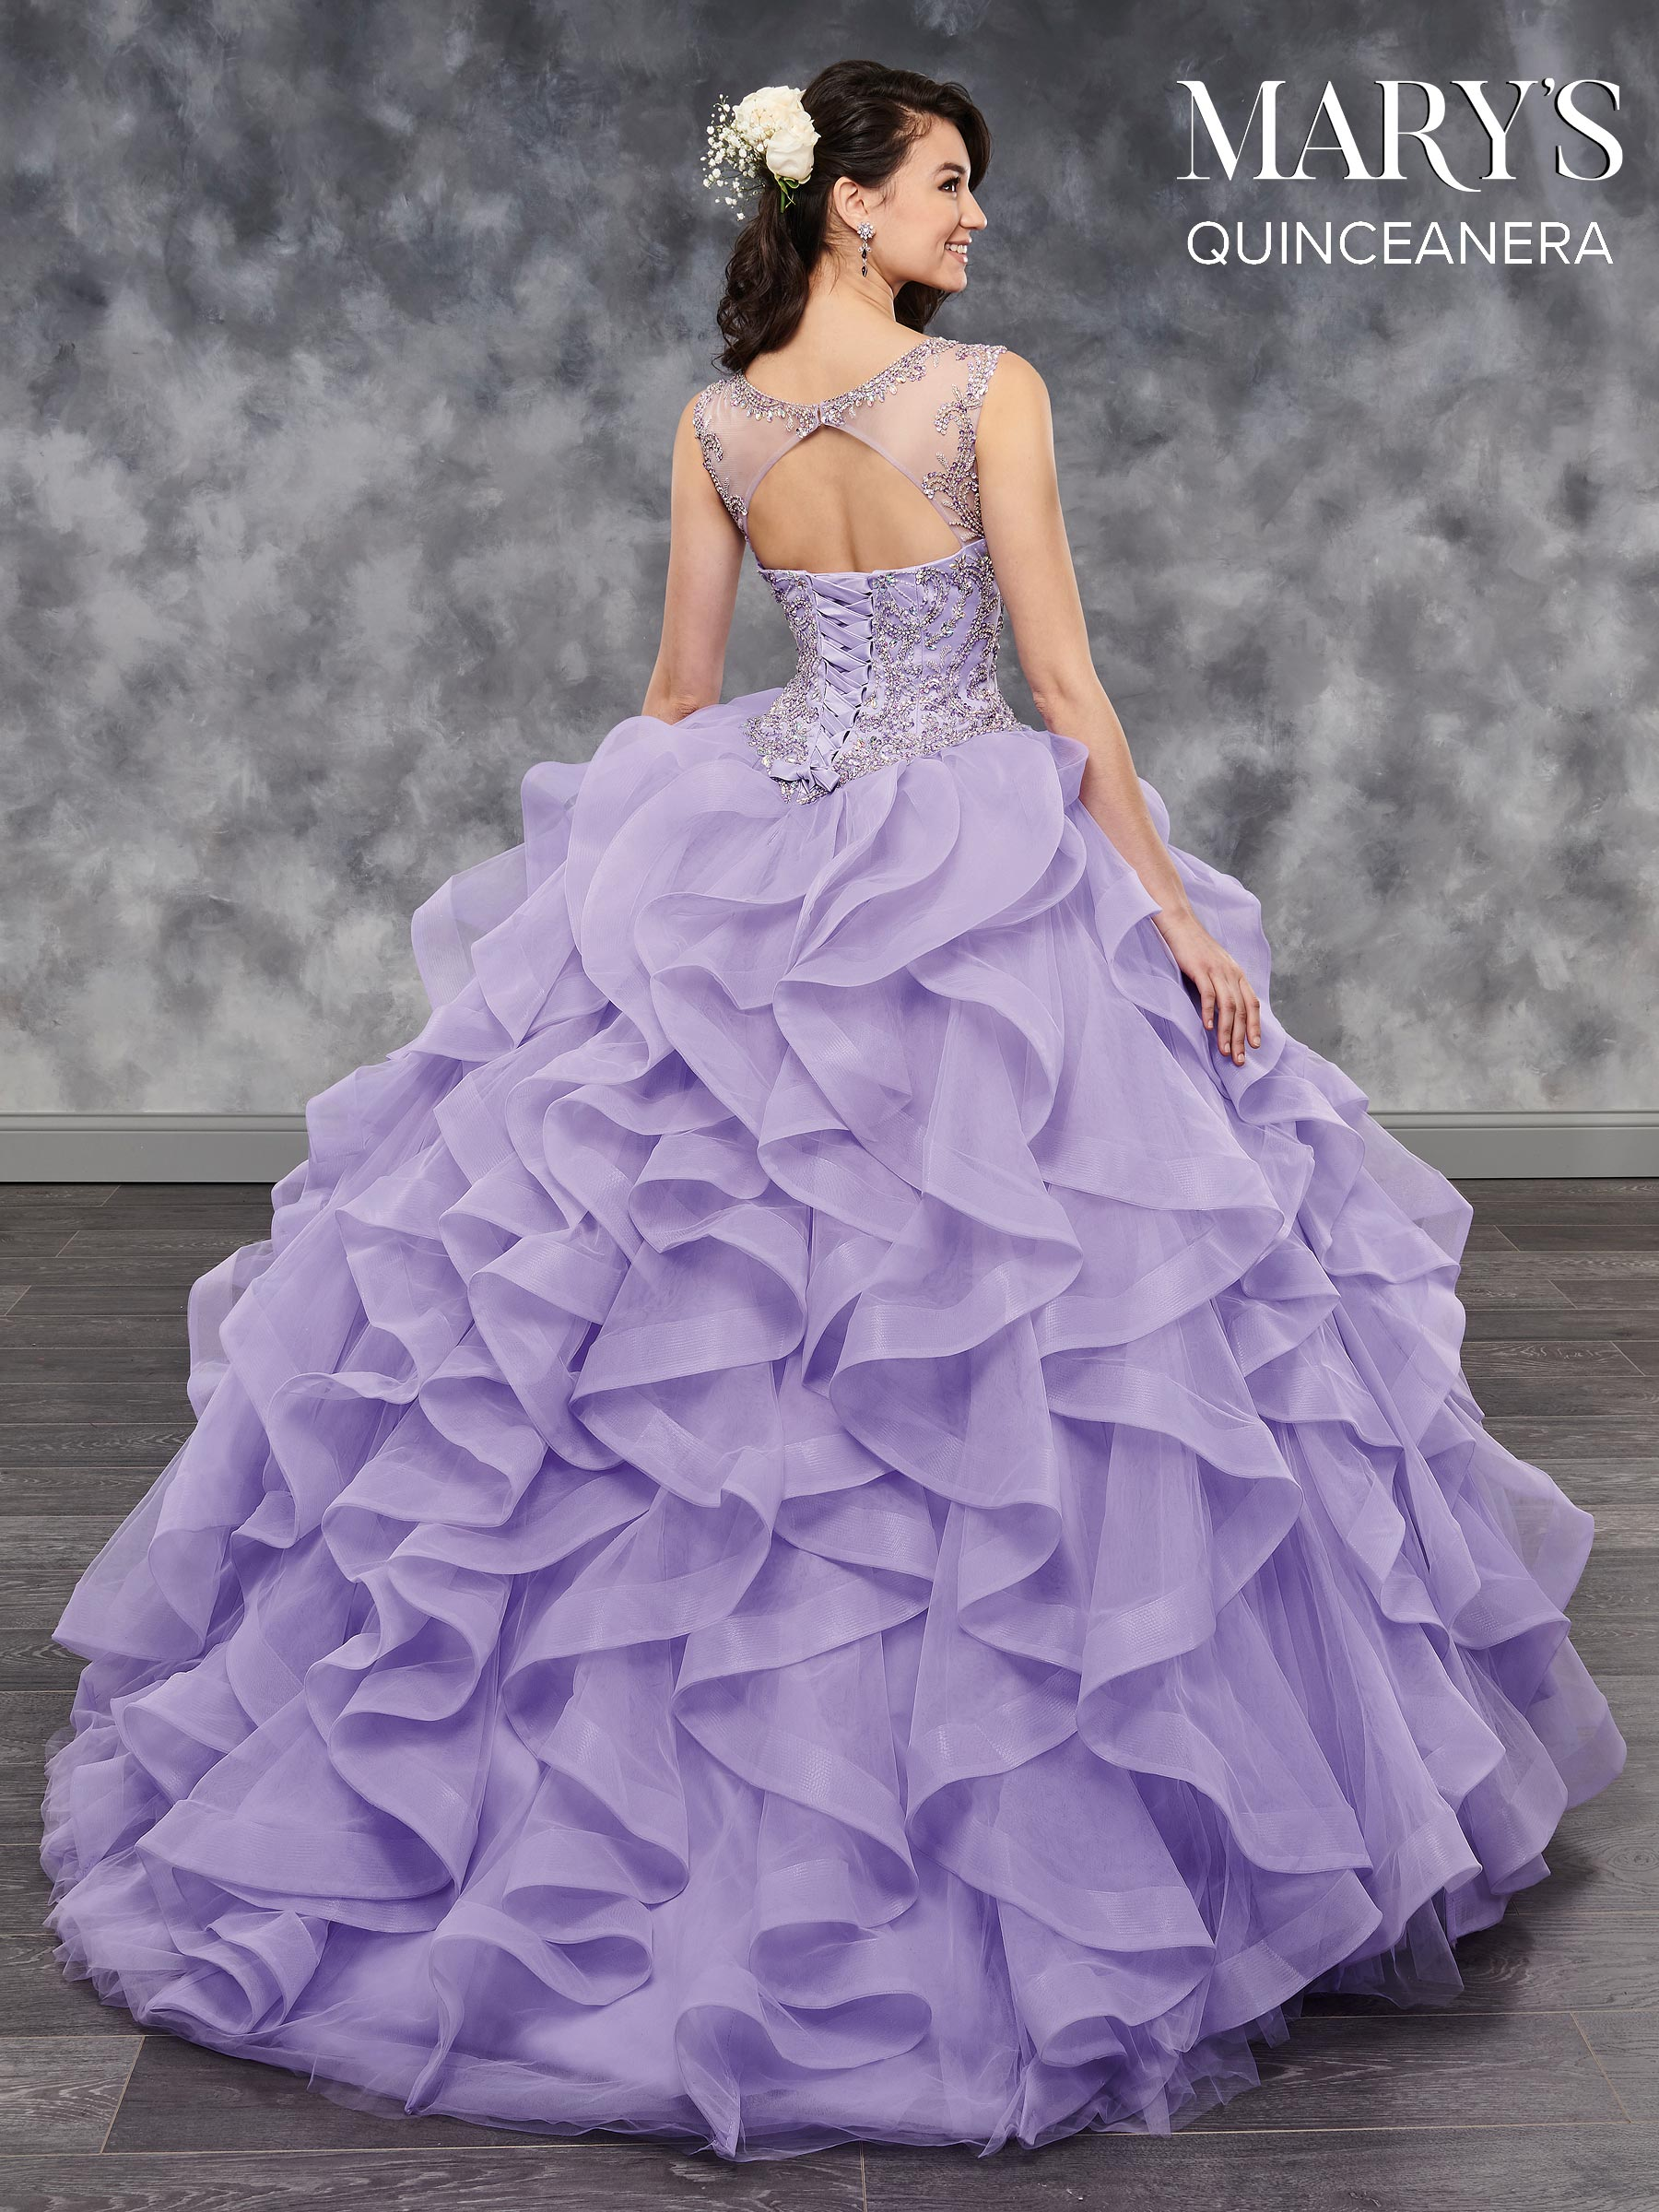 Marys Quinceanera Dresses | Mary's Quinceanera | Style - MQ2035